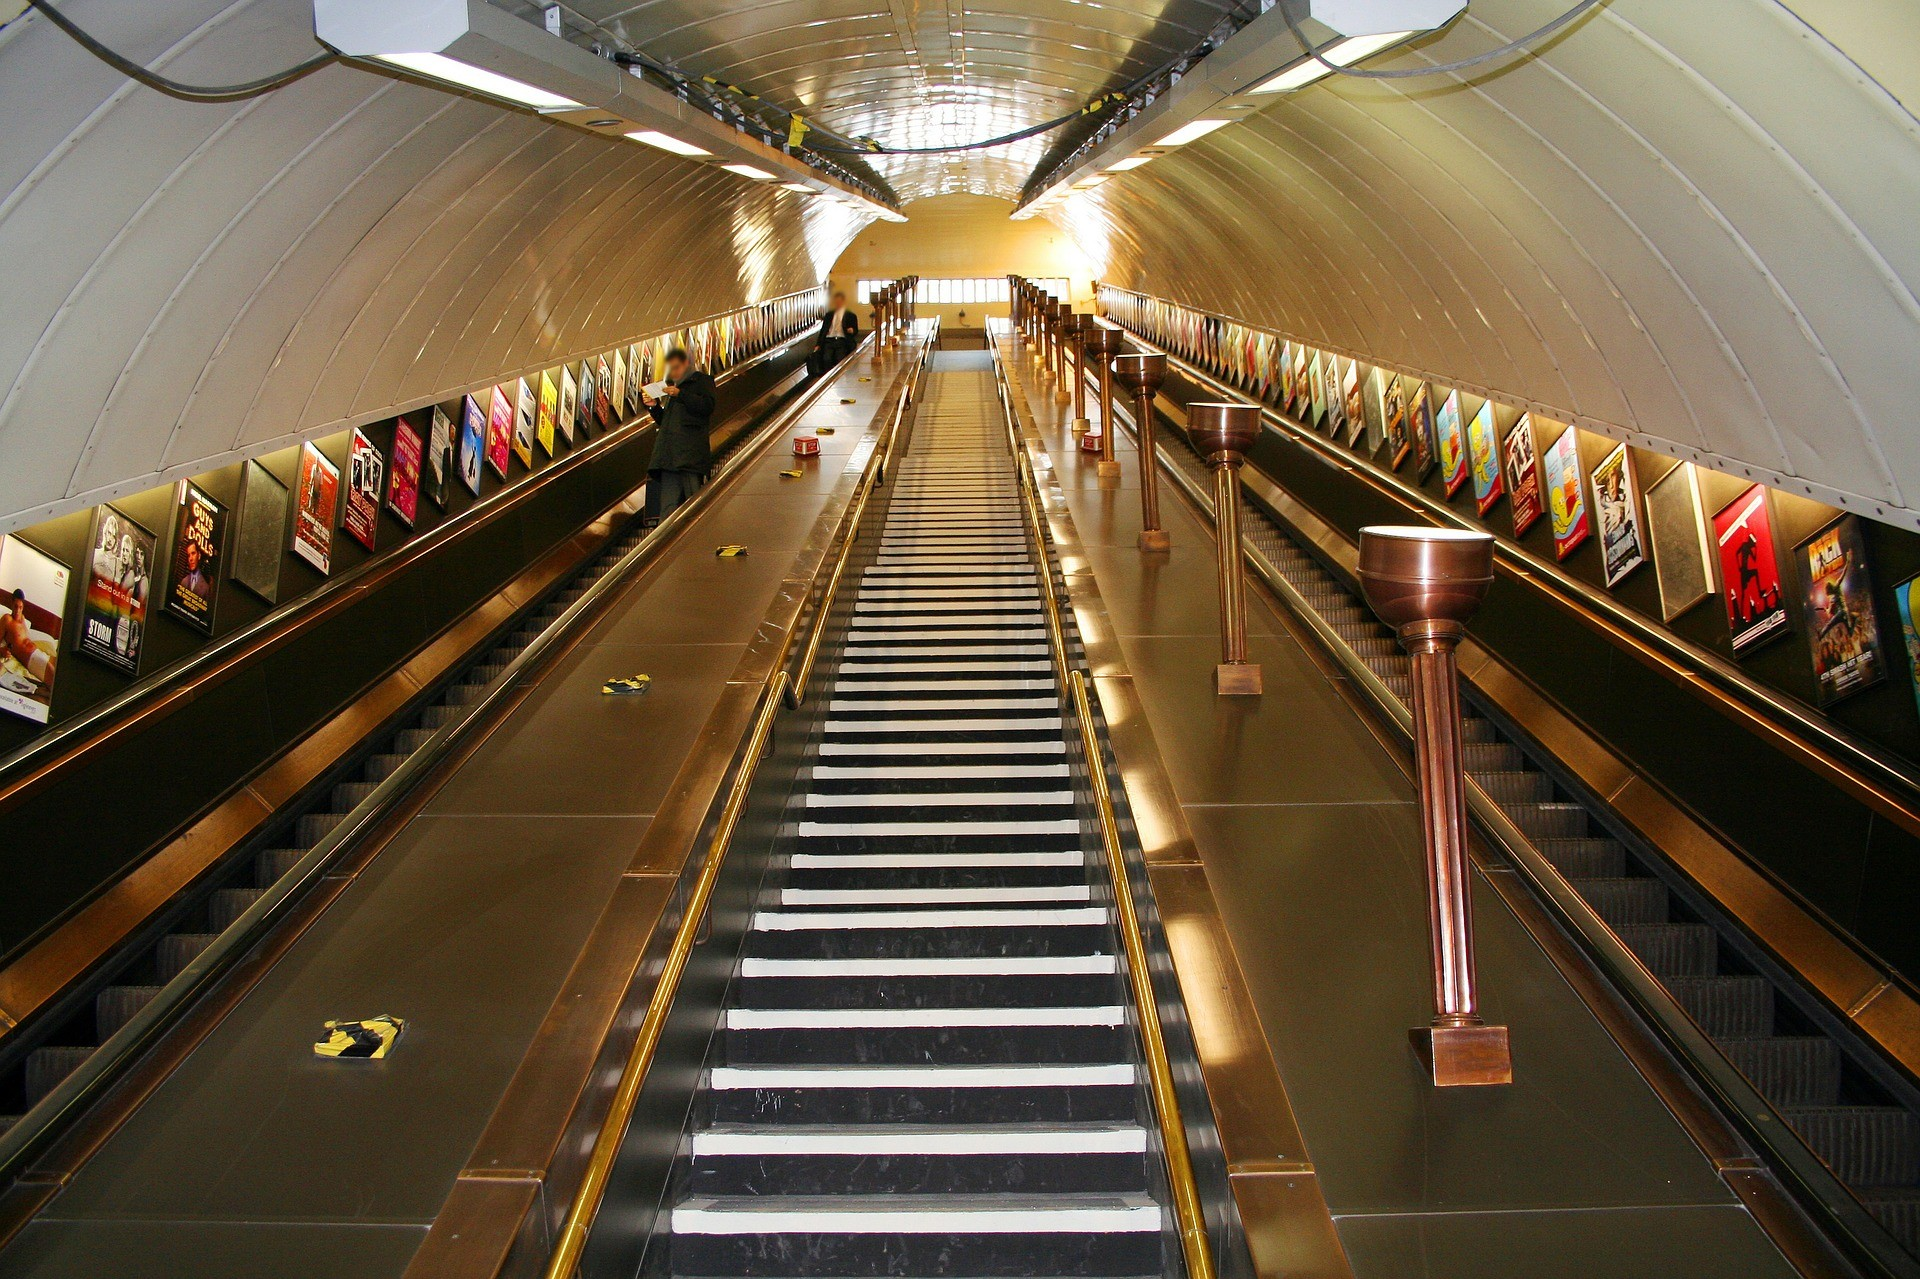 15 tips for London Underground first-timers